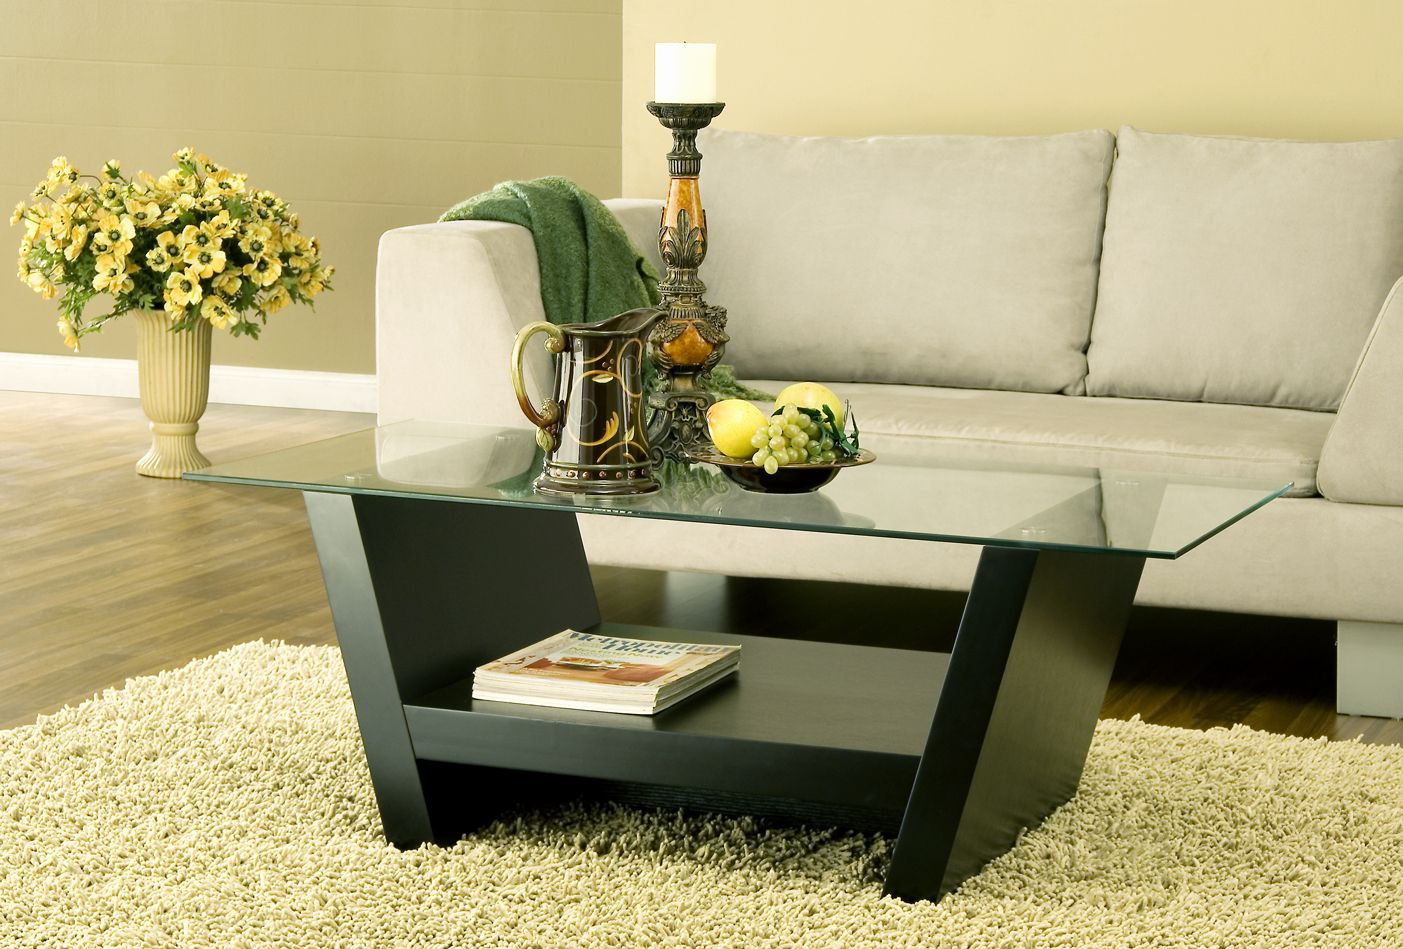 28220ct Smart Home Glass Top Coffee Table Features A Contemporary